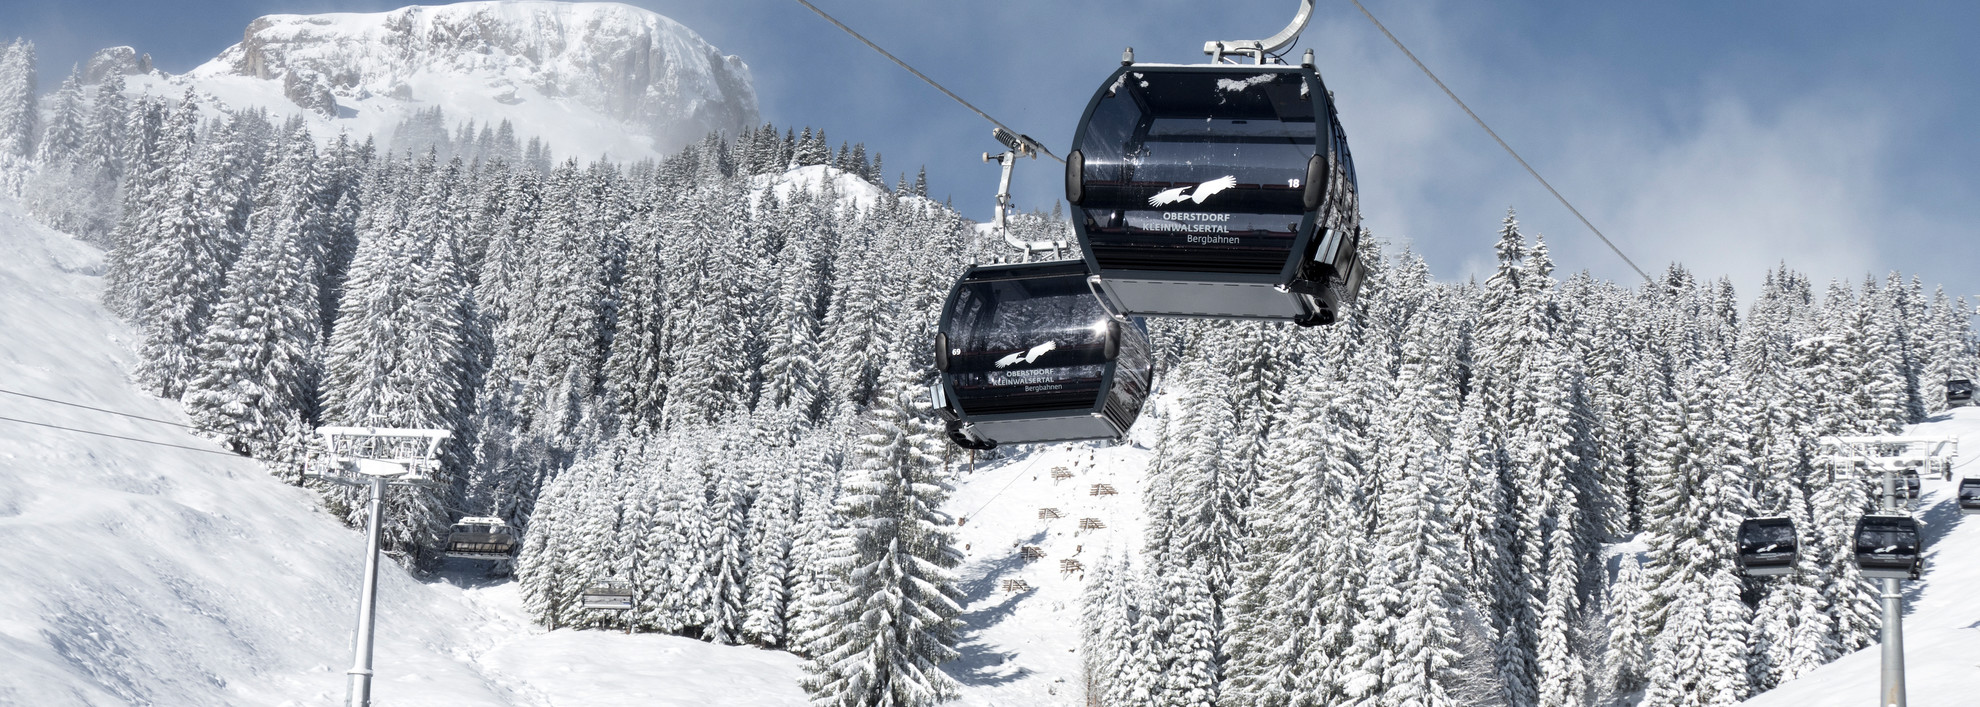 Skiing Ifen | © Oberstdorf Kleinwalsertal mountain railways